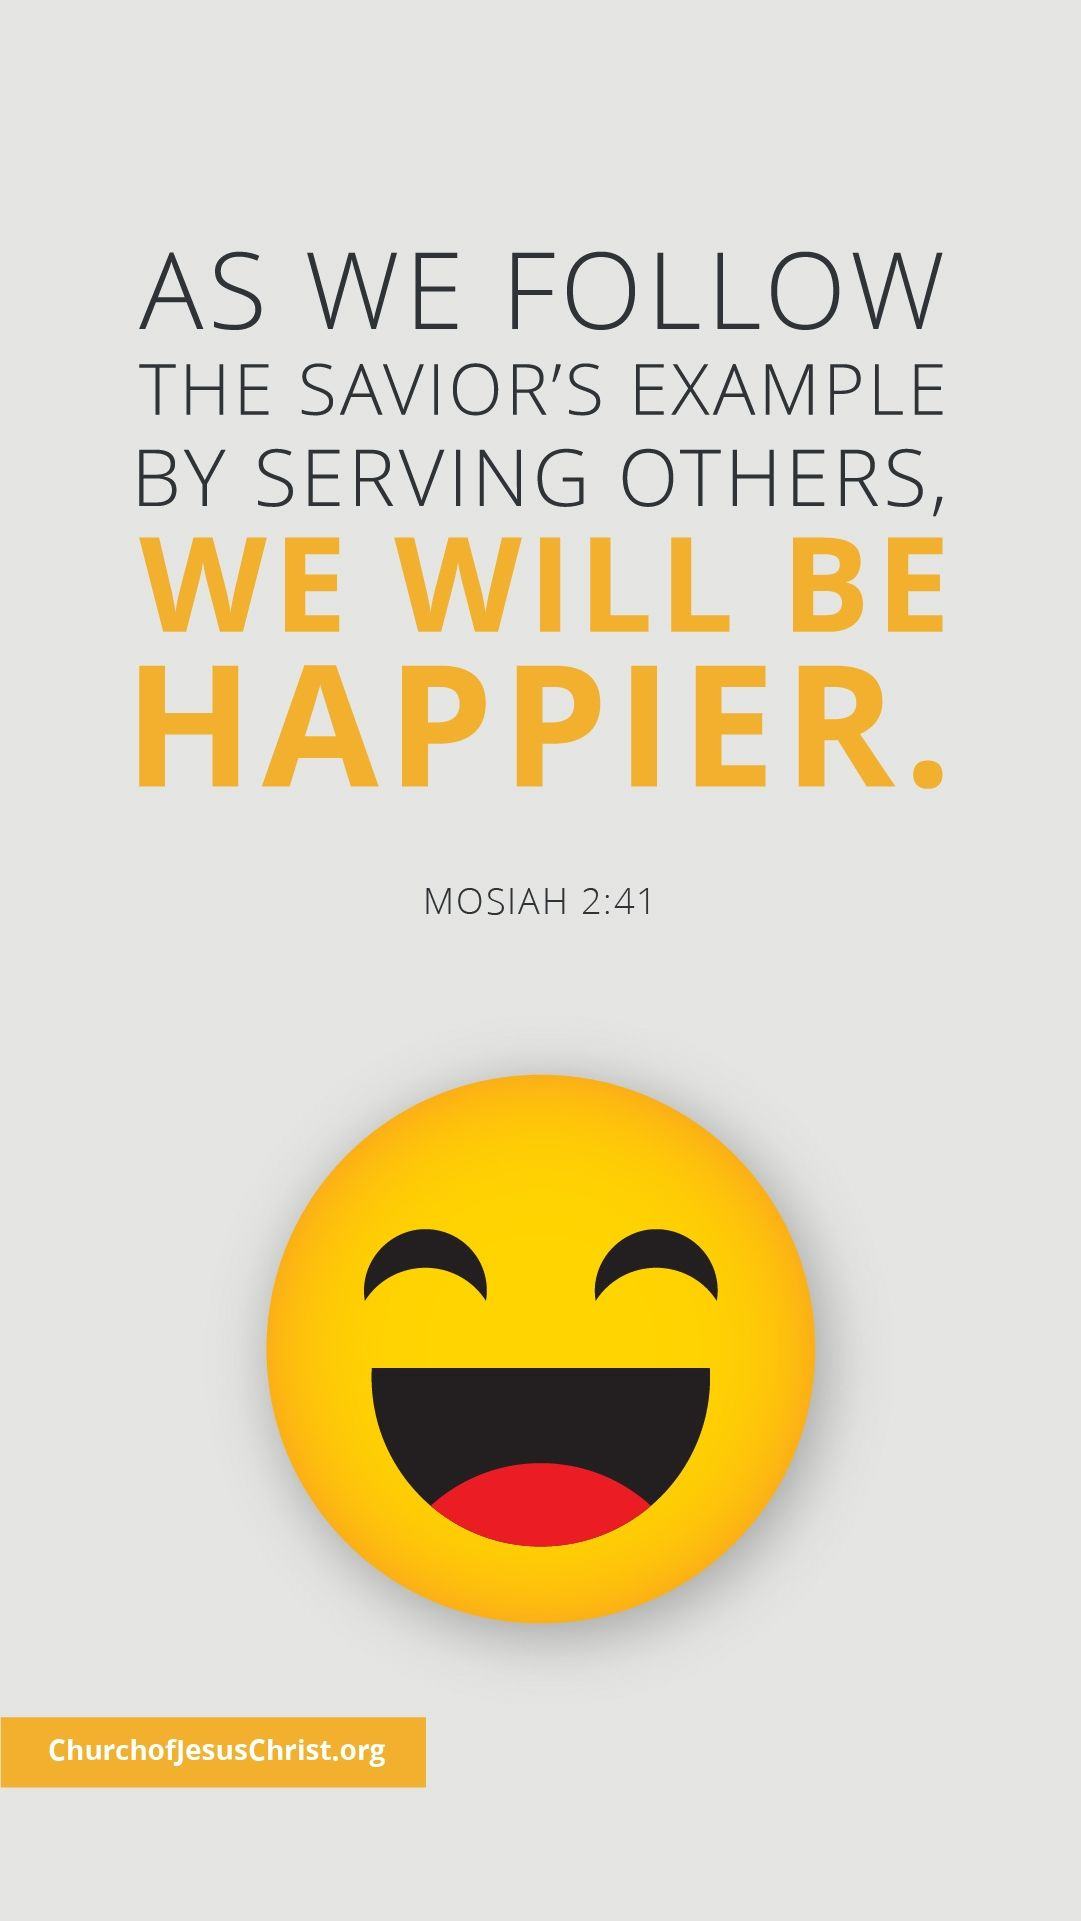 As we follow the Savior's example by serving others, we will be happier. — See Mosiah 2:41